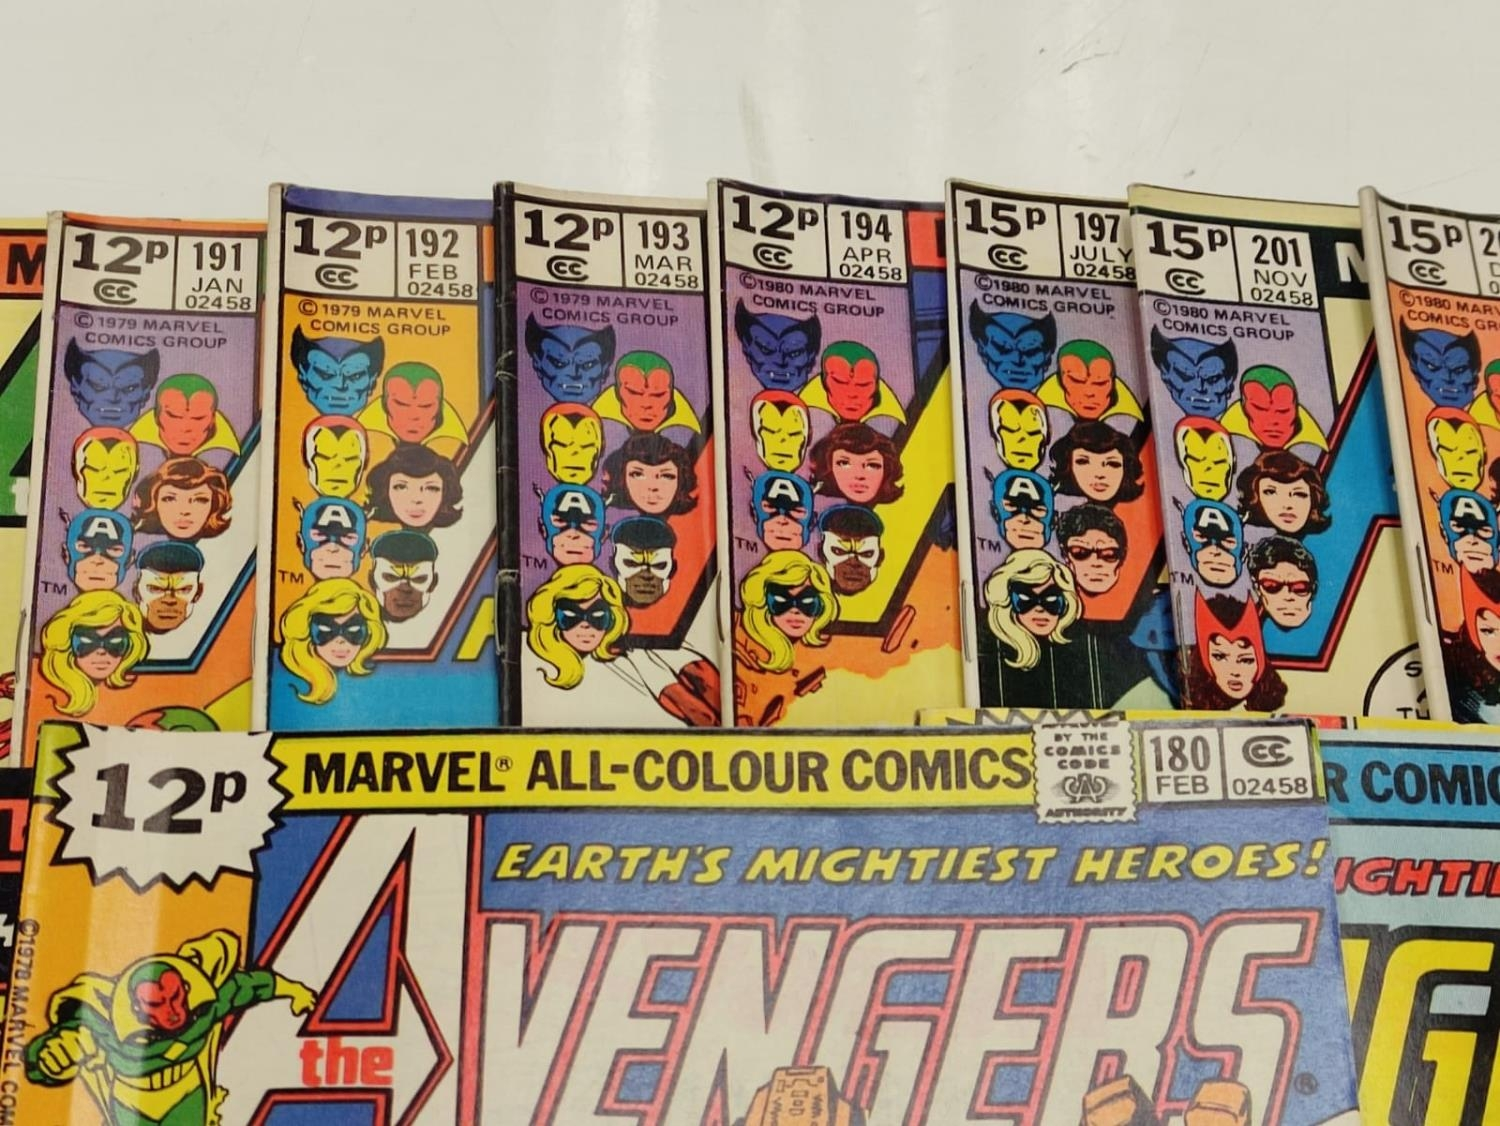 17 editions of Vintage Marvel 'The Avengers' comics in very good condition. - Image 6 of 12